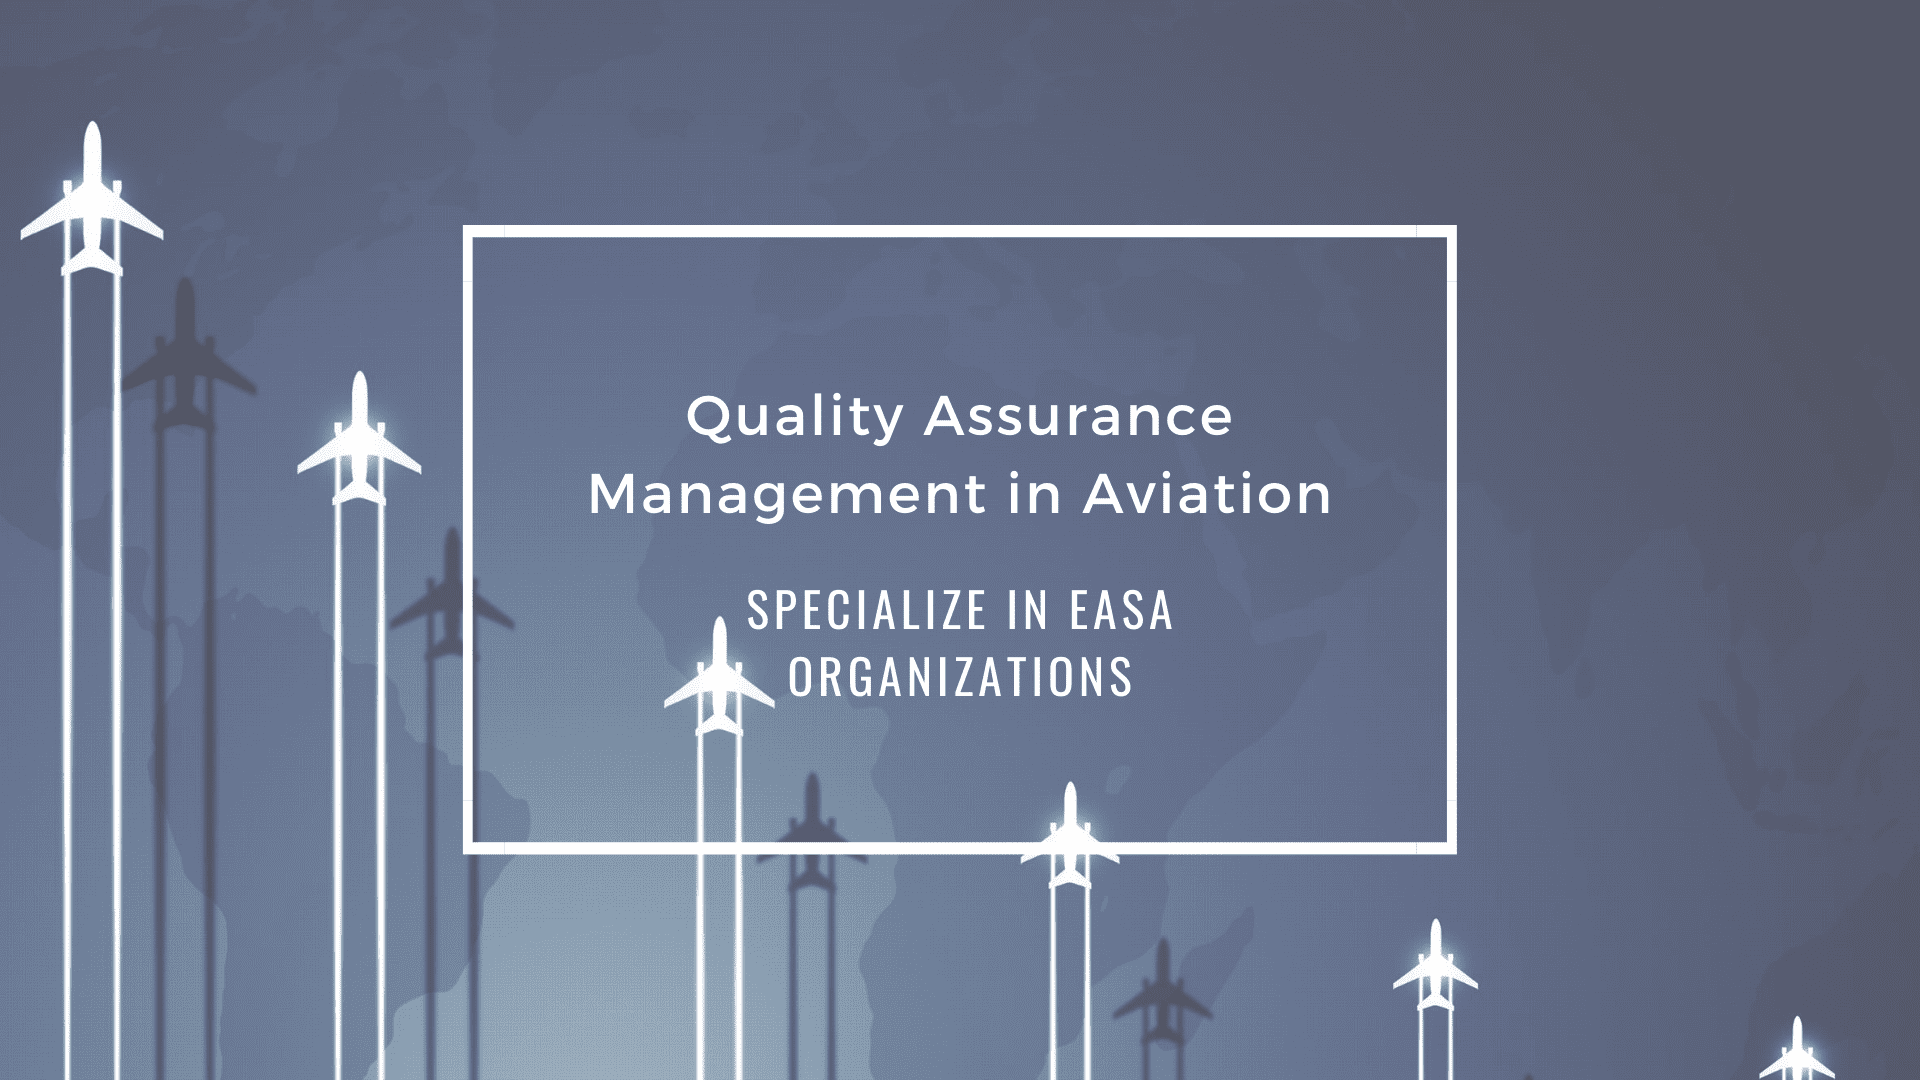 Quality Assurance Management in Aviation